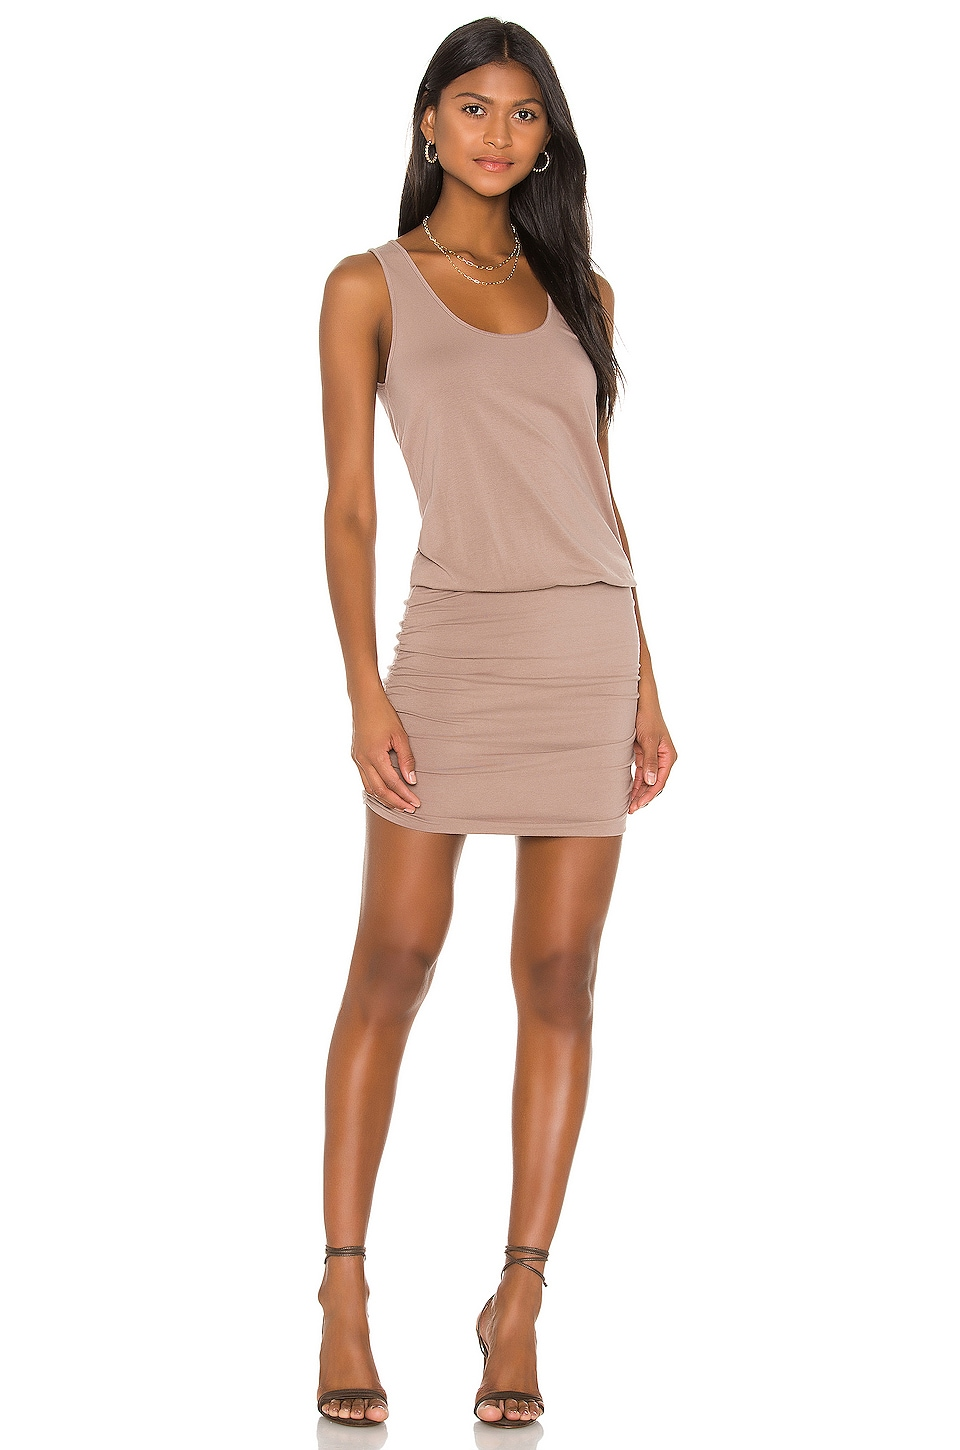 Draped Modal Jersey Mini Dress             Bobi                                                                                                       CA$ 92.43 2